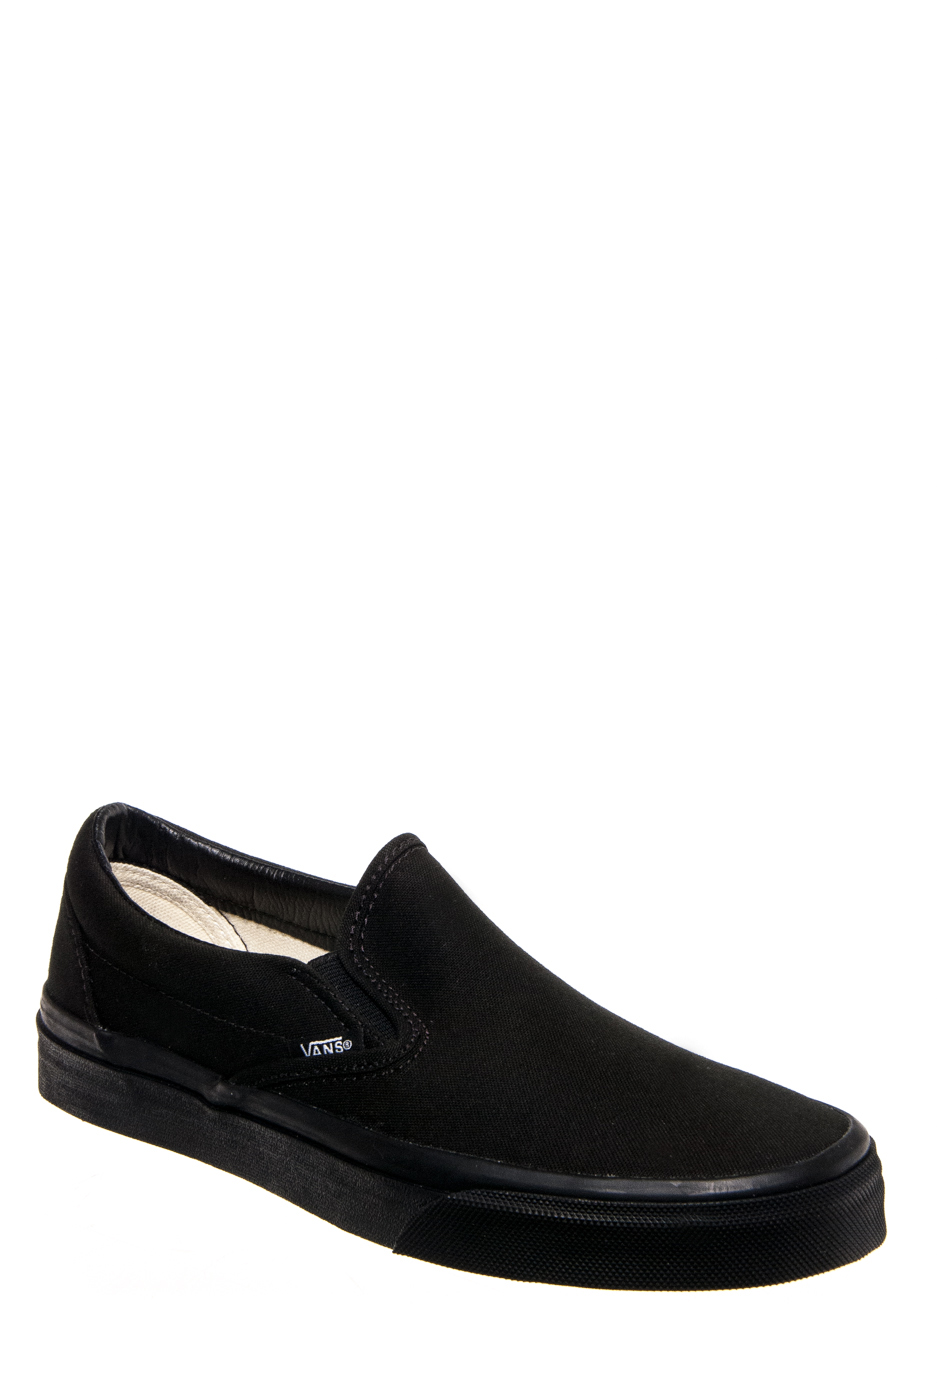 VANS Unisex Classic Slip On Sneakers - Black / Black